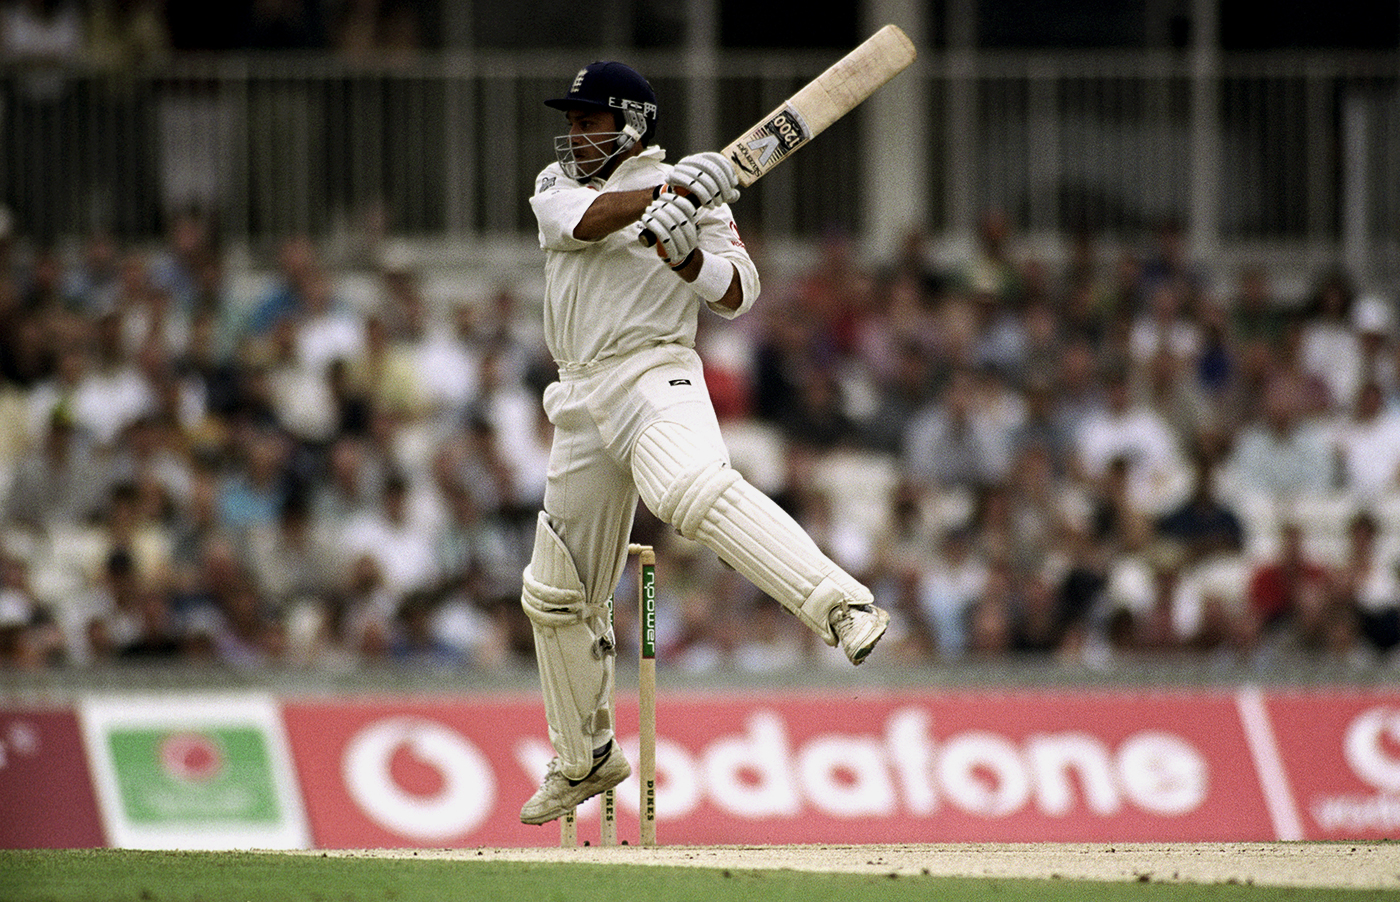 The last, perfect miniature: Ramprakash on his way to his second, and last, Test hundred, against Australia at The Oval in 2001